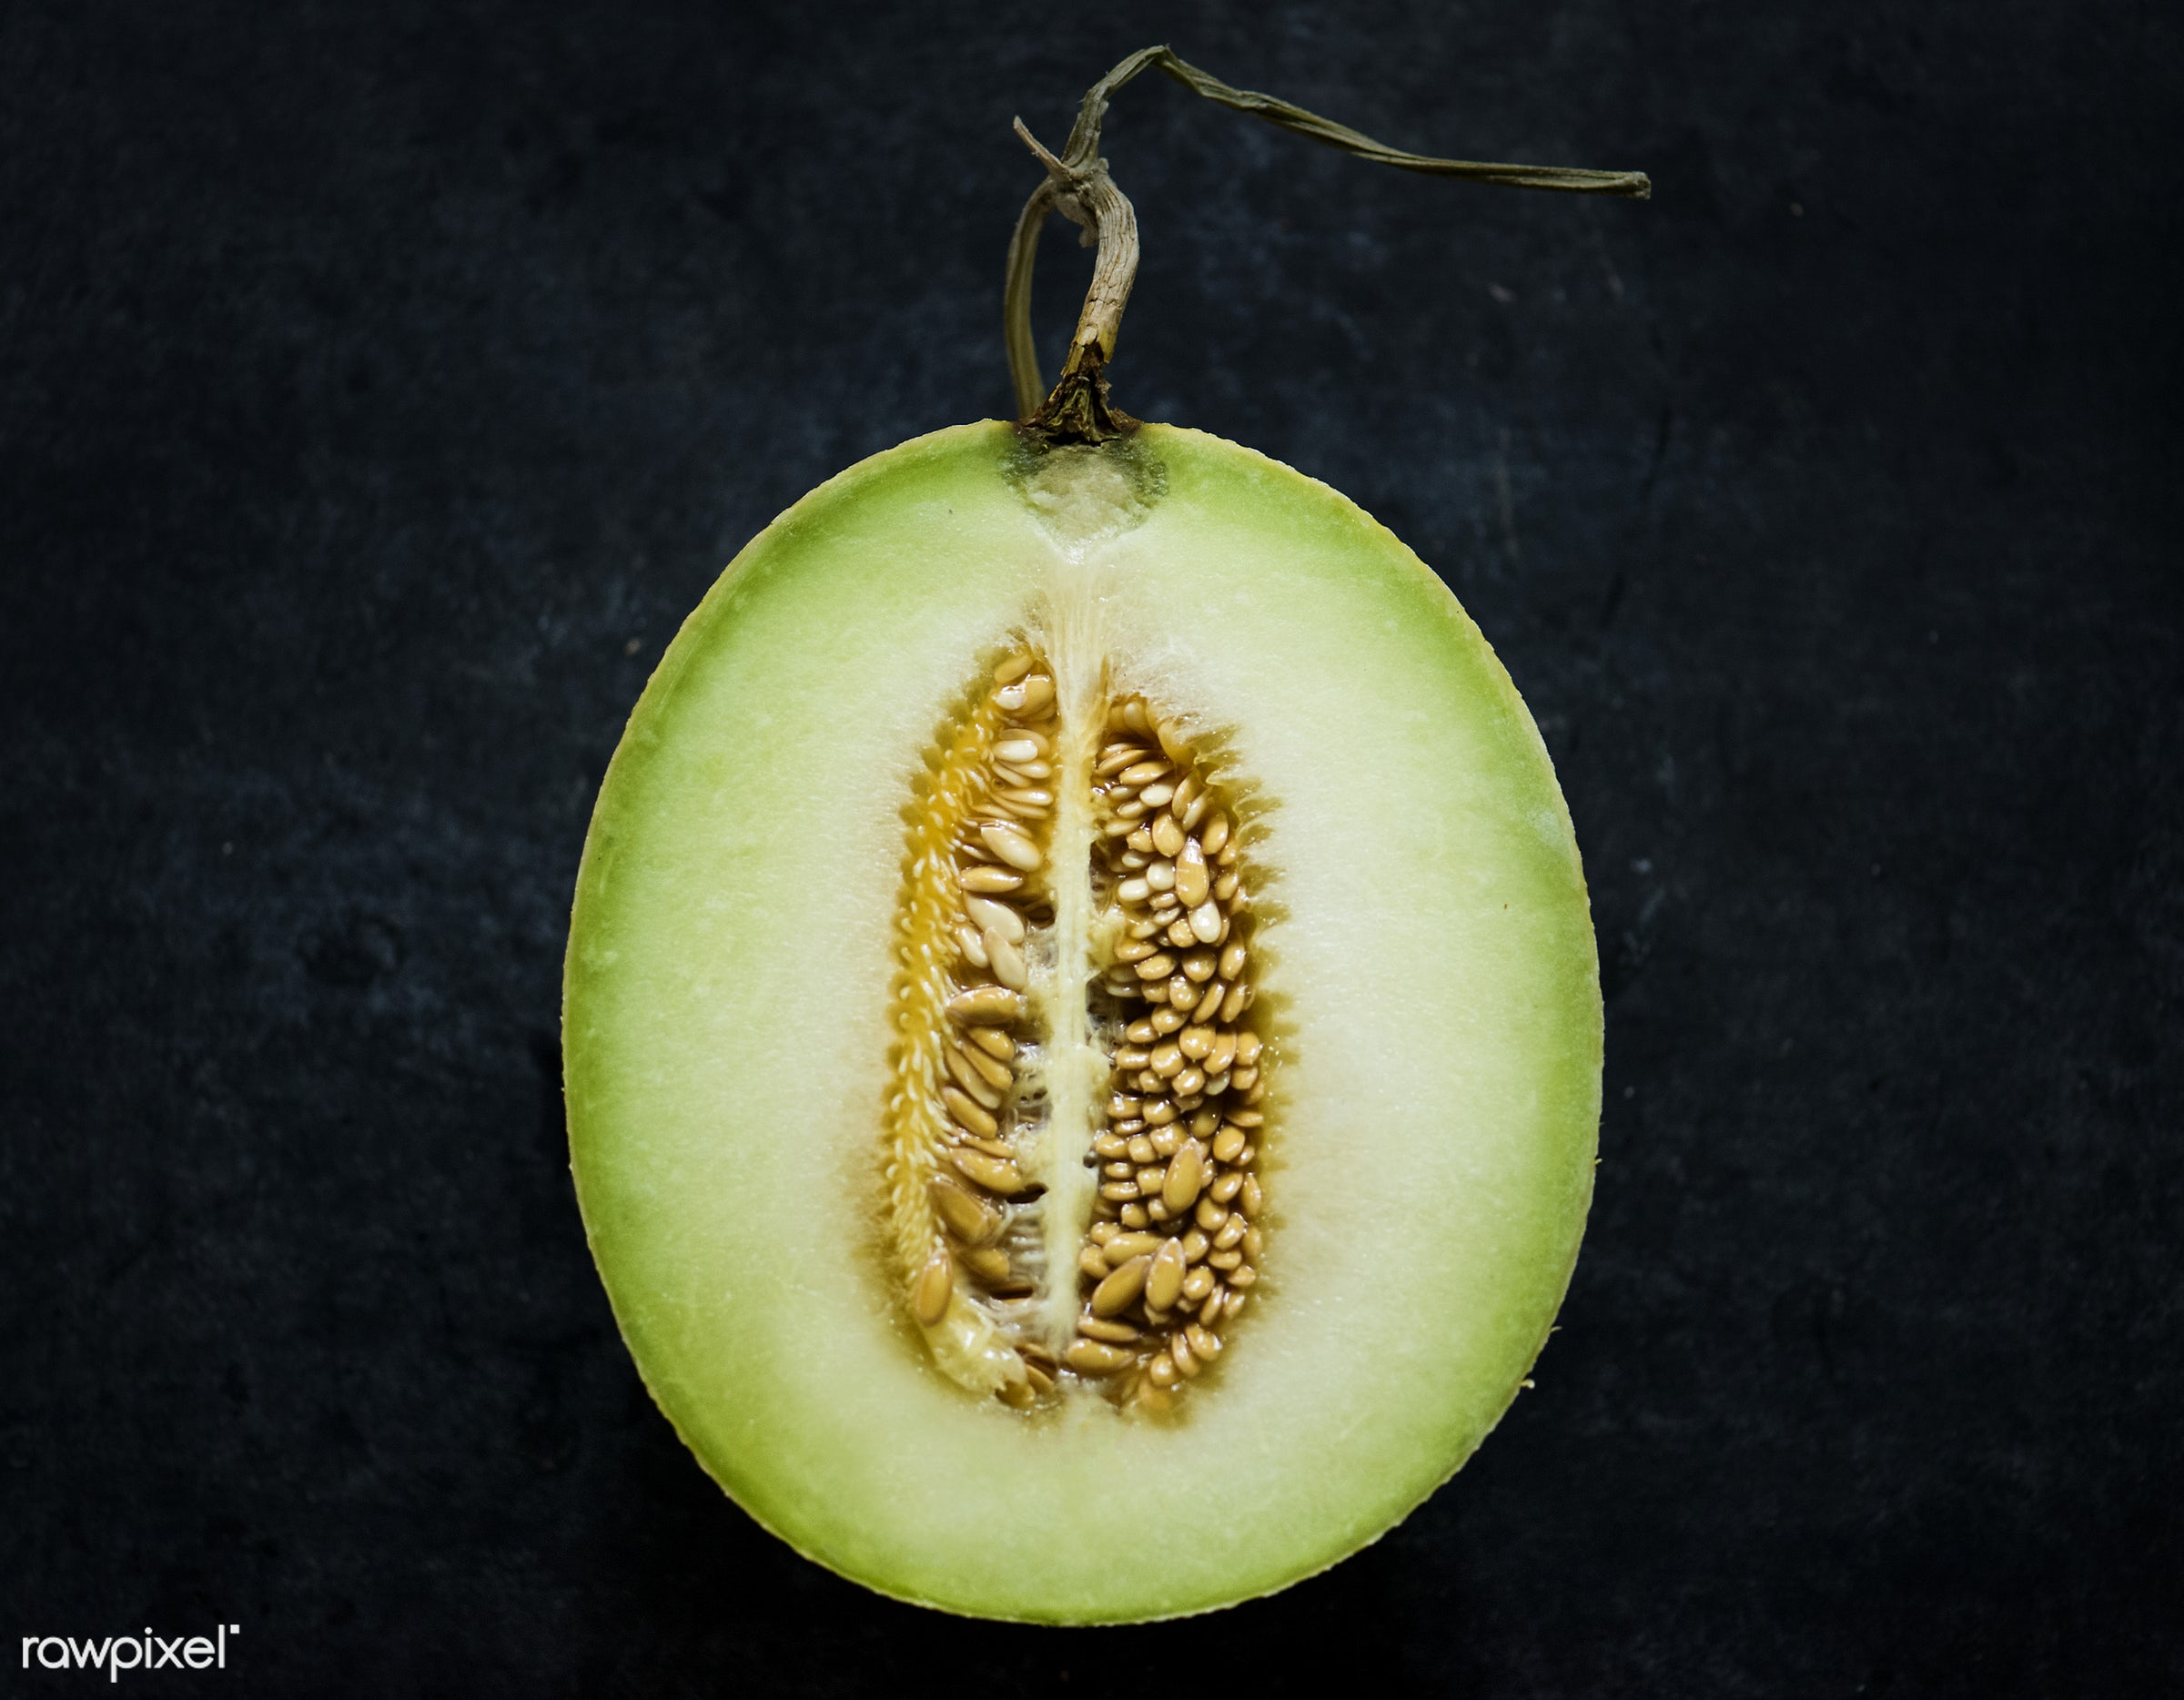 juicy, fruit, seed, green, tropical, honeydew, variety, nutrition, nature, fresh, ripe, healthy